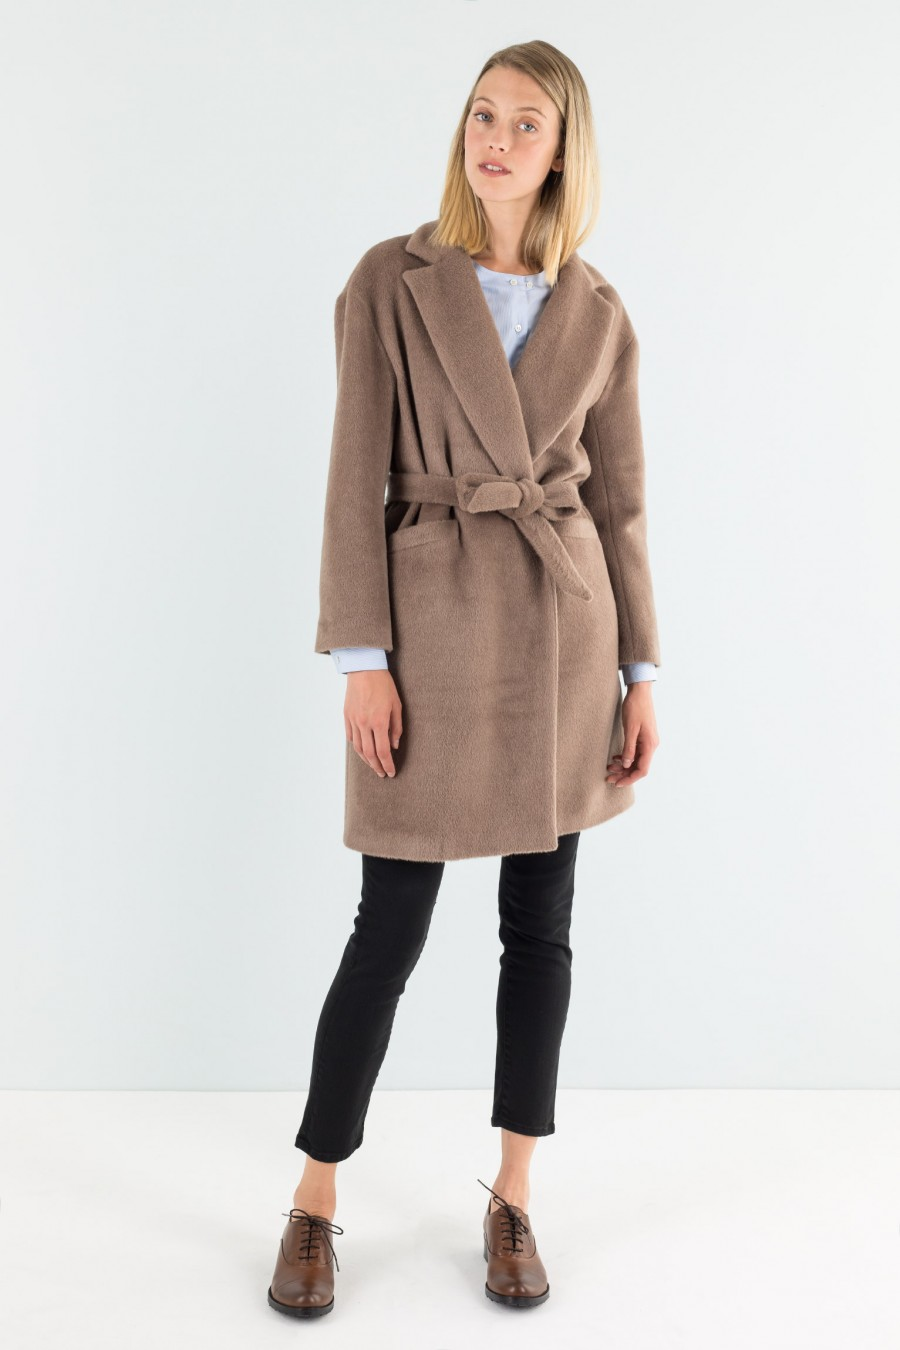 Alpaca fabric Lazzari coat